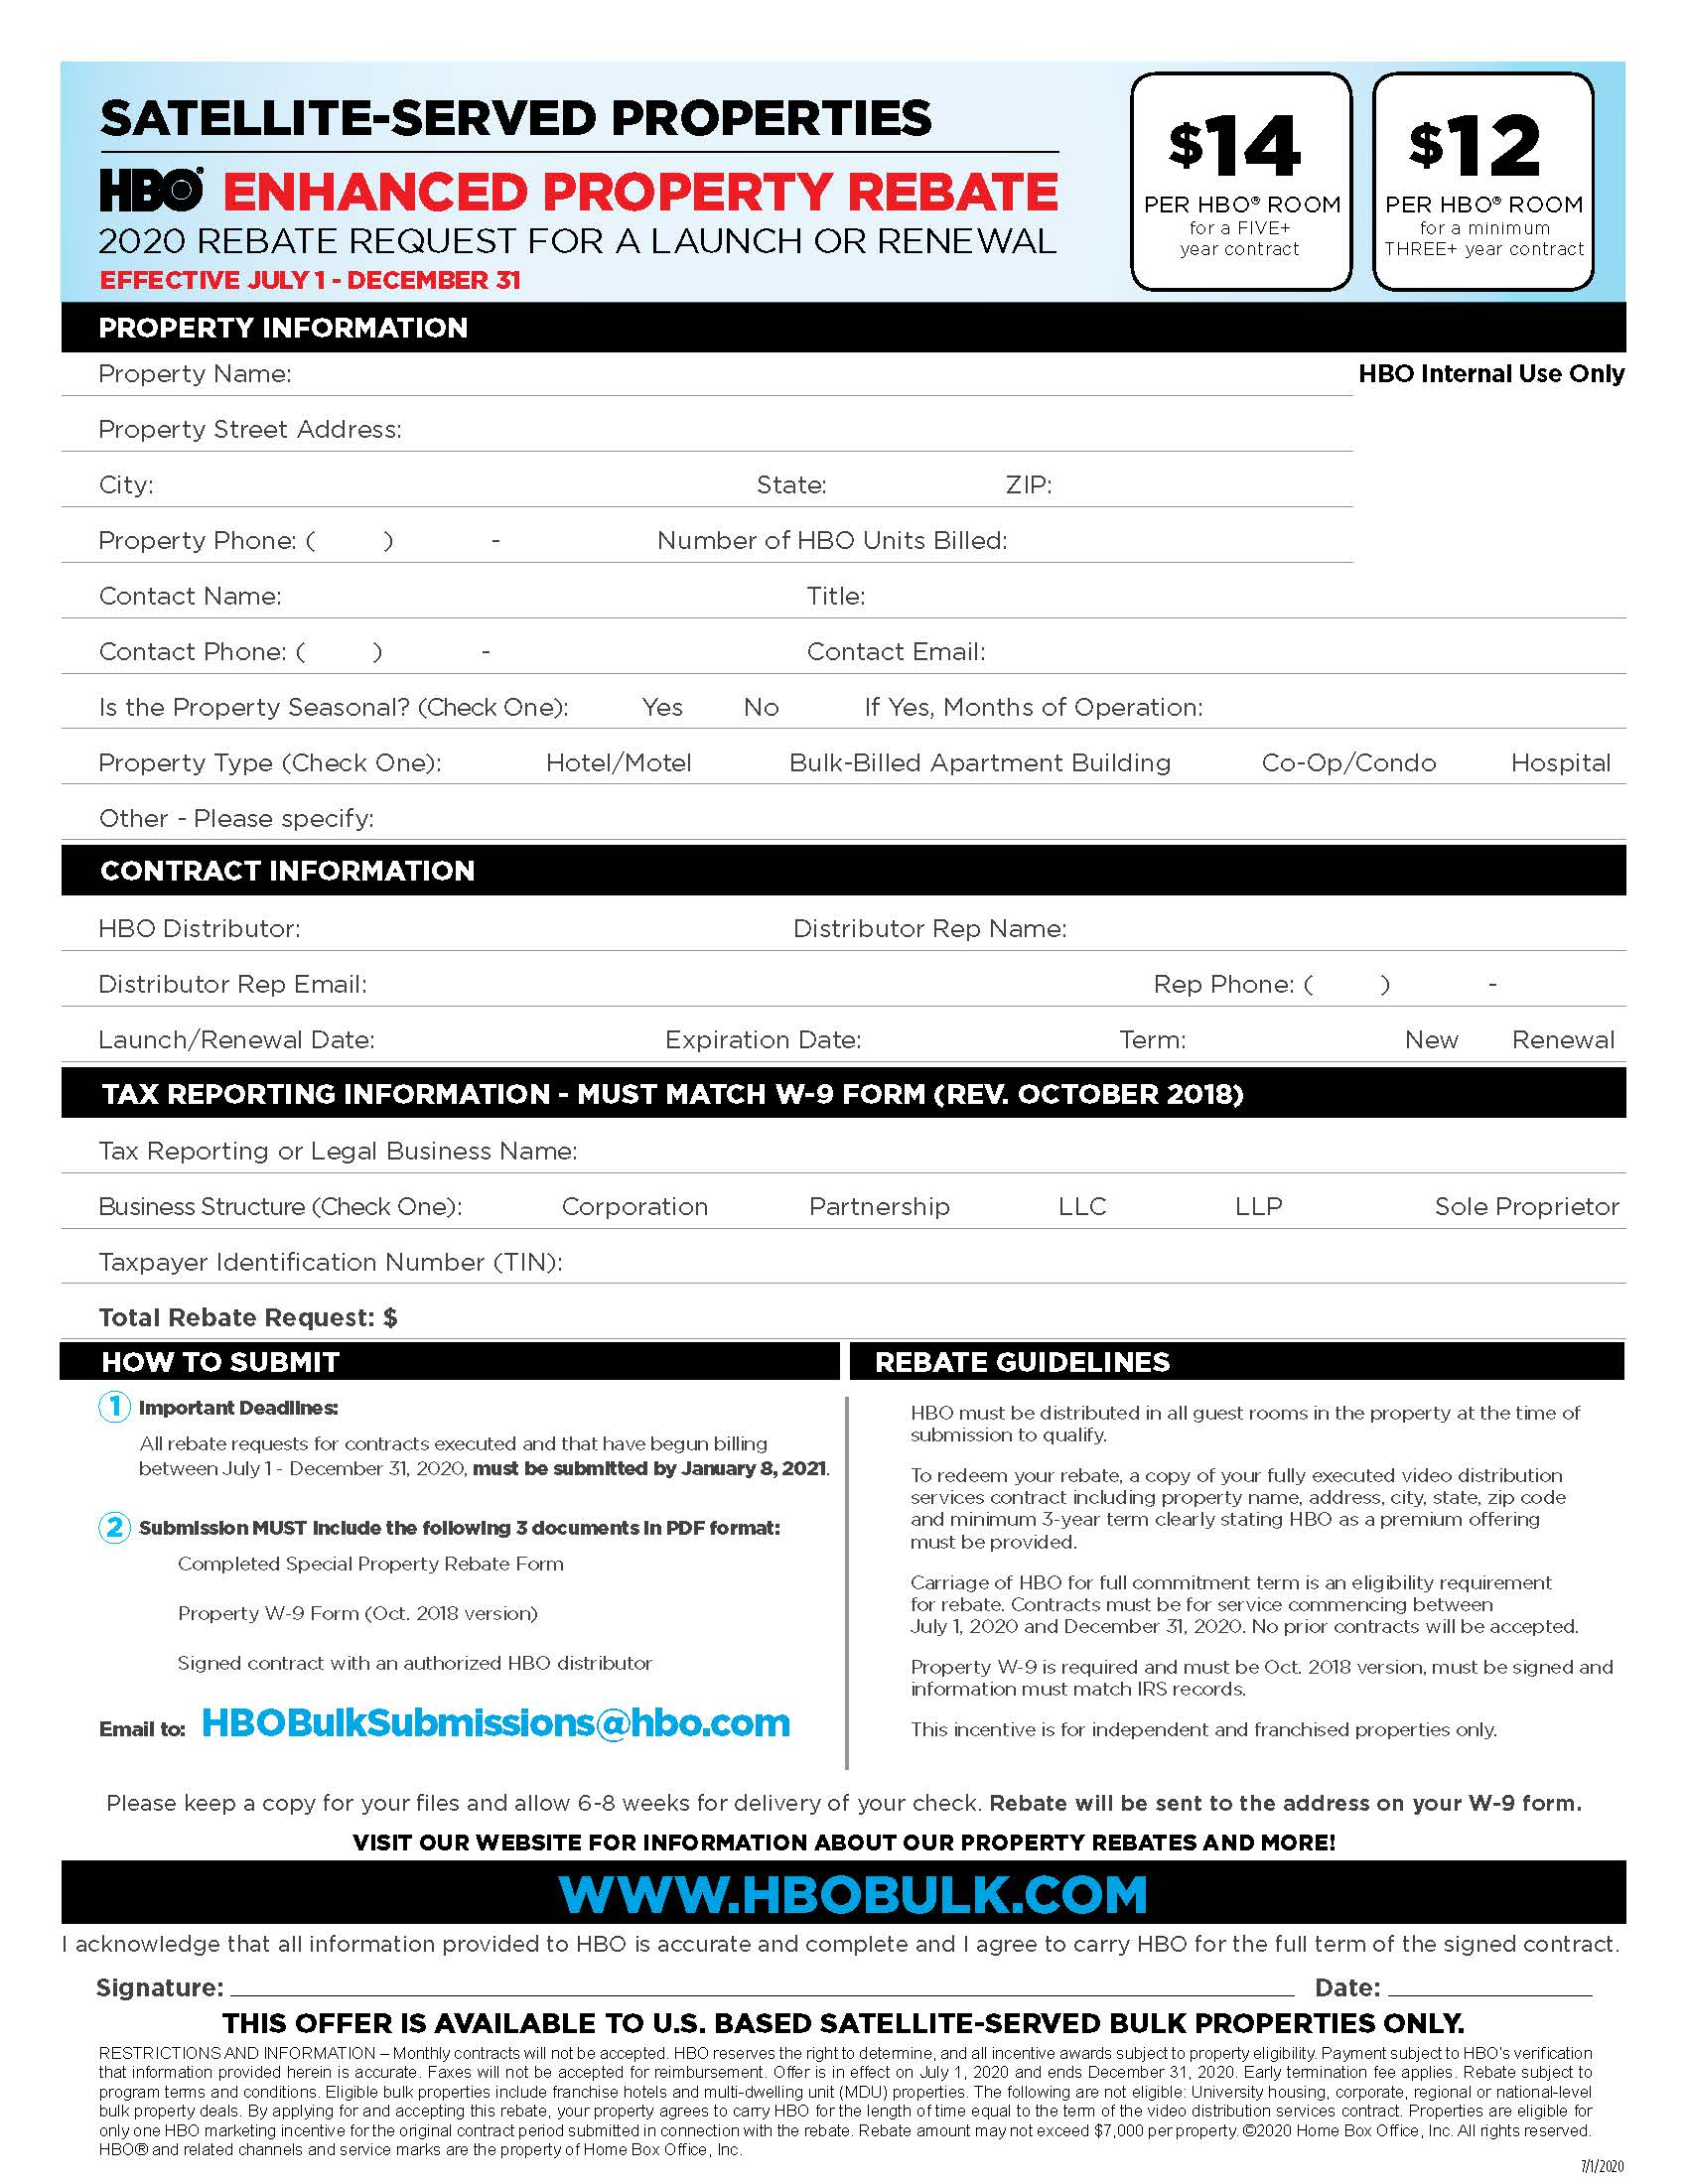 2020-hbo-enhanced-property-rebate-form-satellite-(2h20)_Page_1